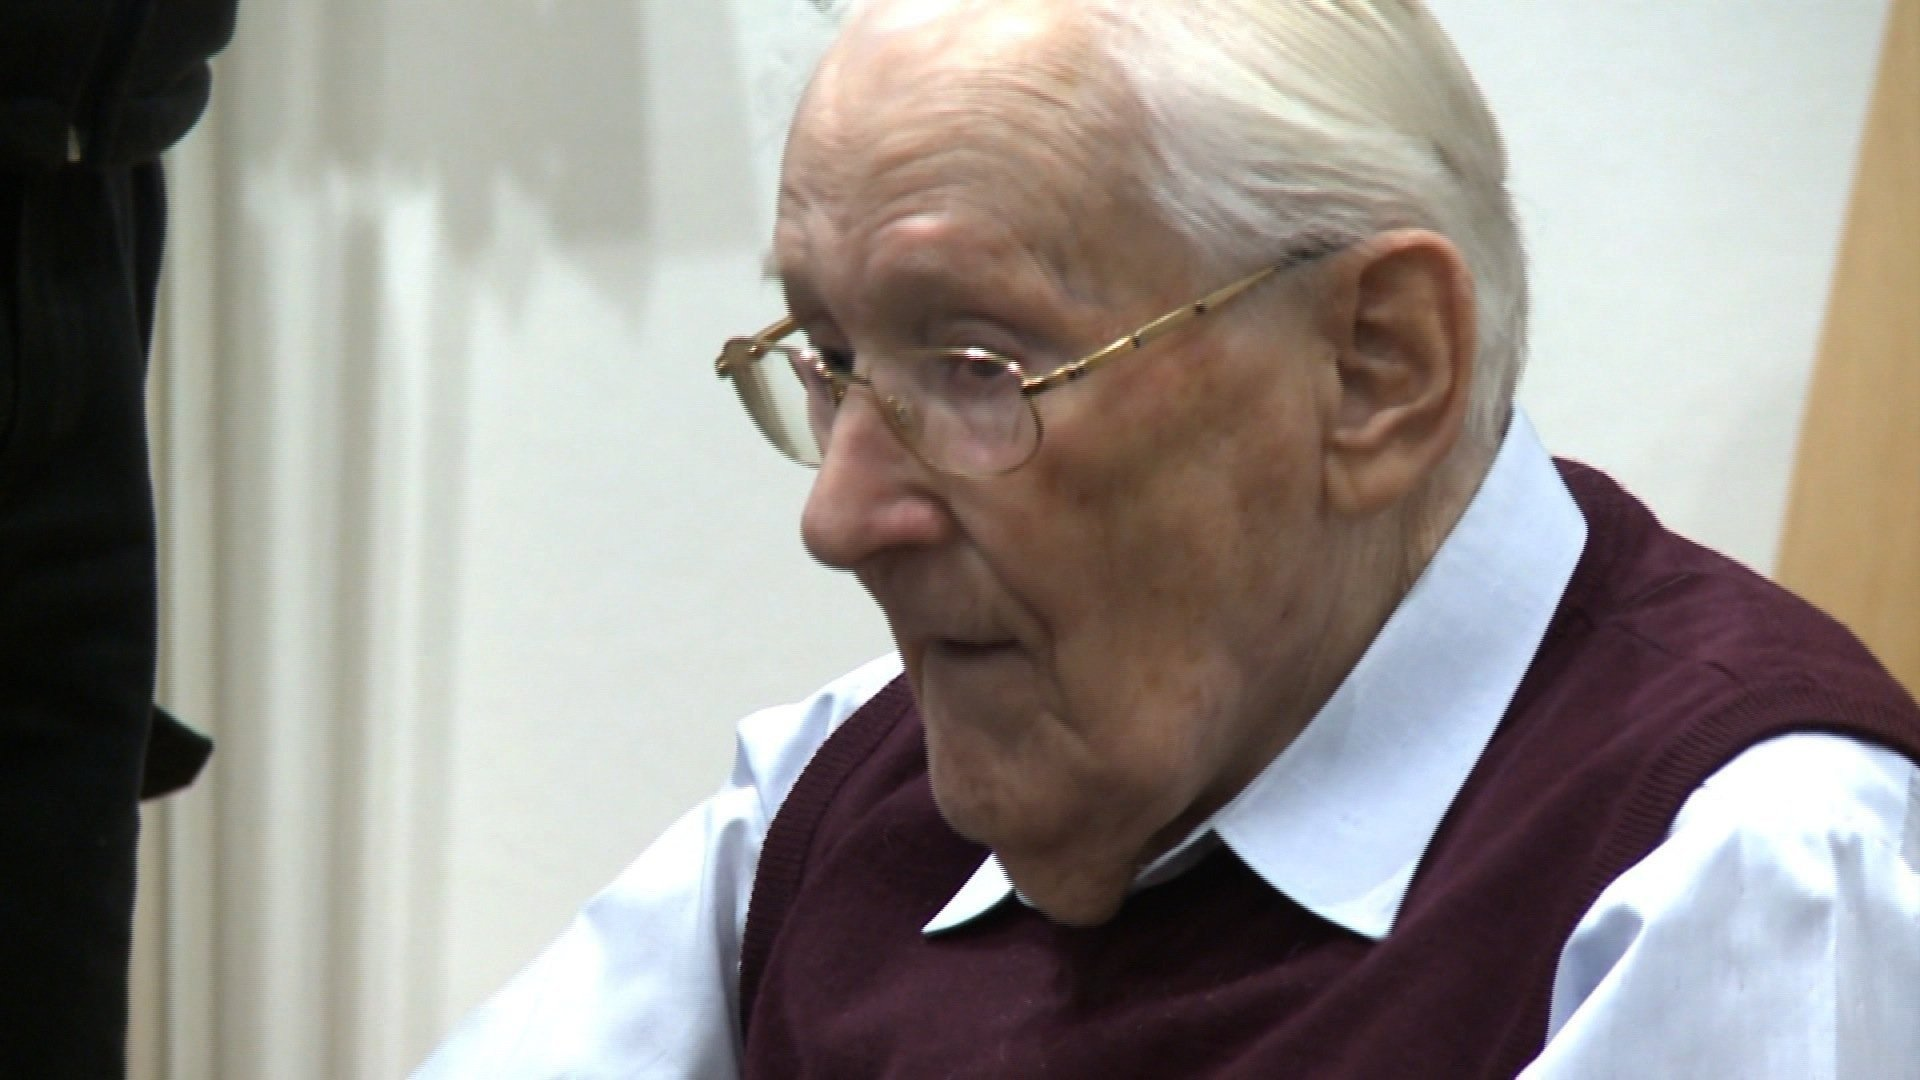 """A court in Germany sentenced former Nazi officer Oskar Groening, known as """"the bookkeeper of Auschwitz,"""" to four years in prison on Wednesday."""